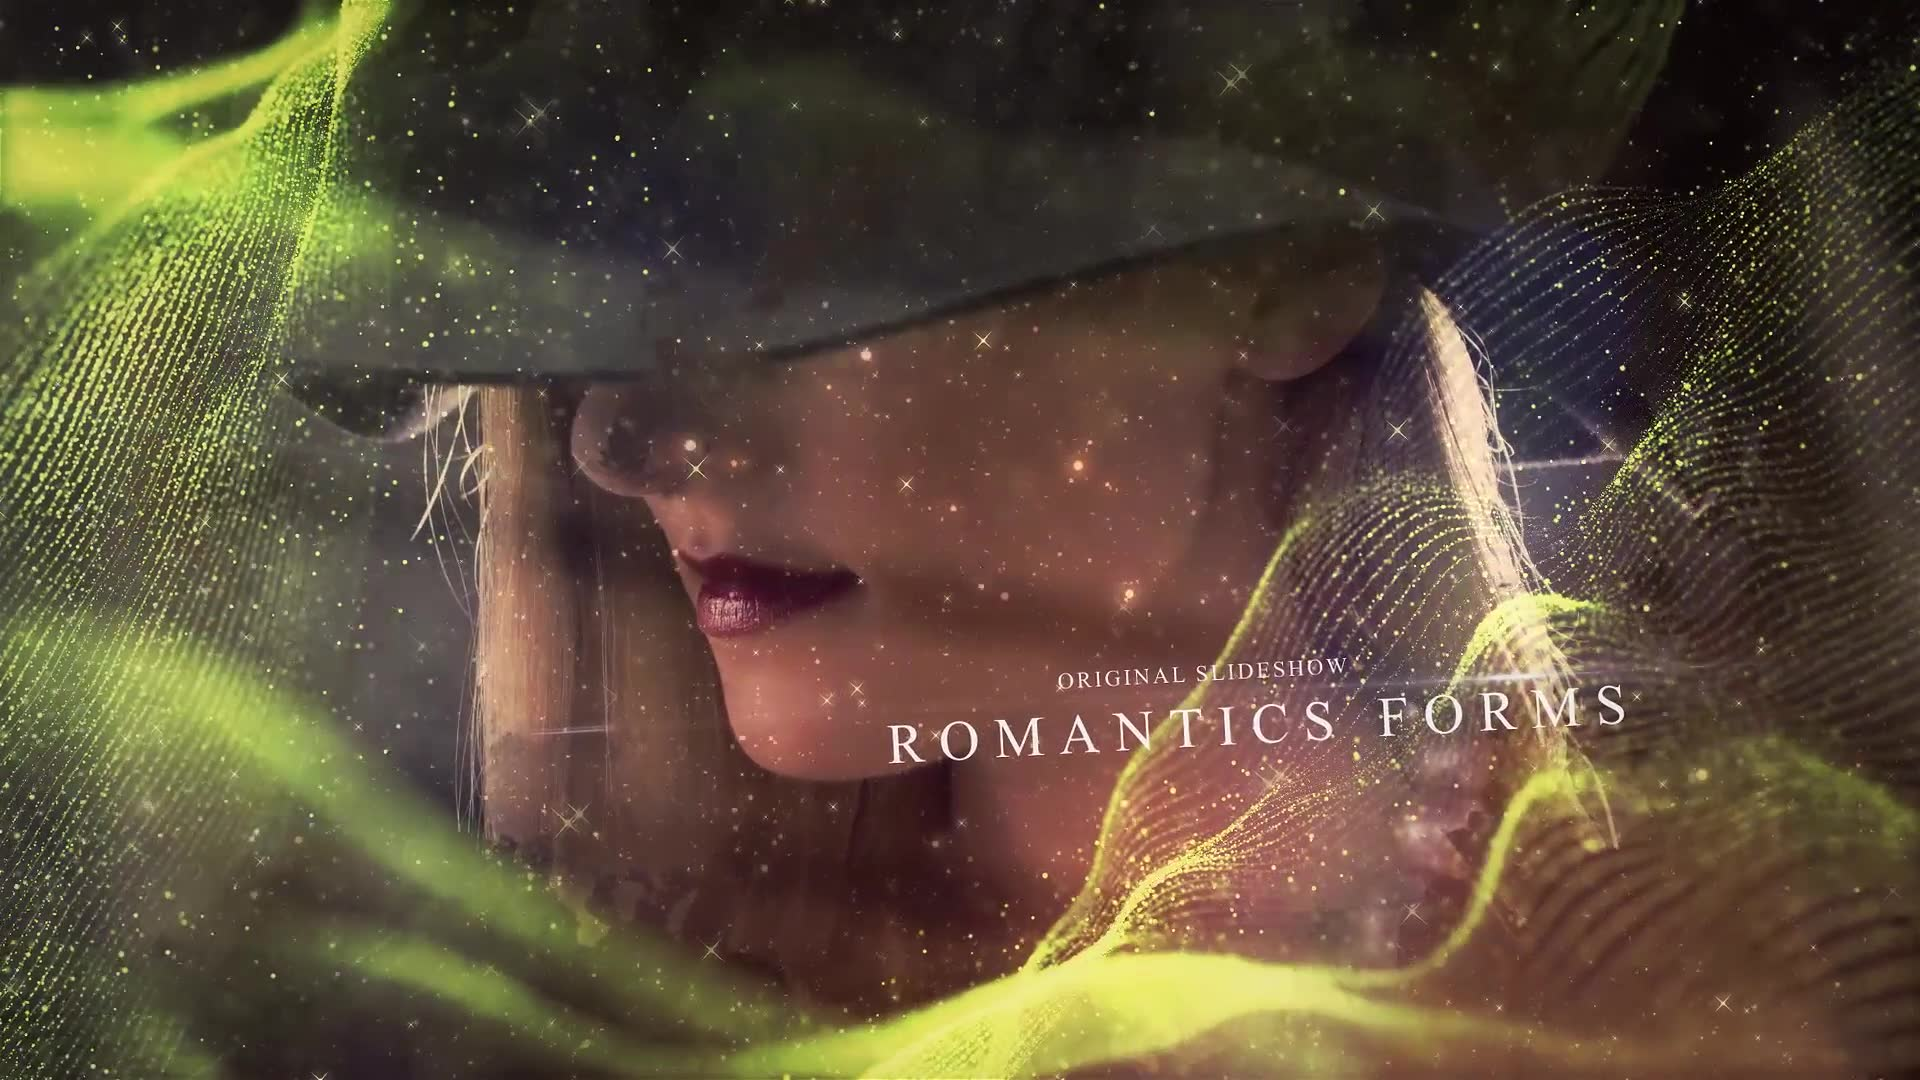 Romantic Forms Particles Slideshow Videohive 31368899 Premiere Pro Image 12